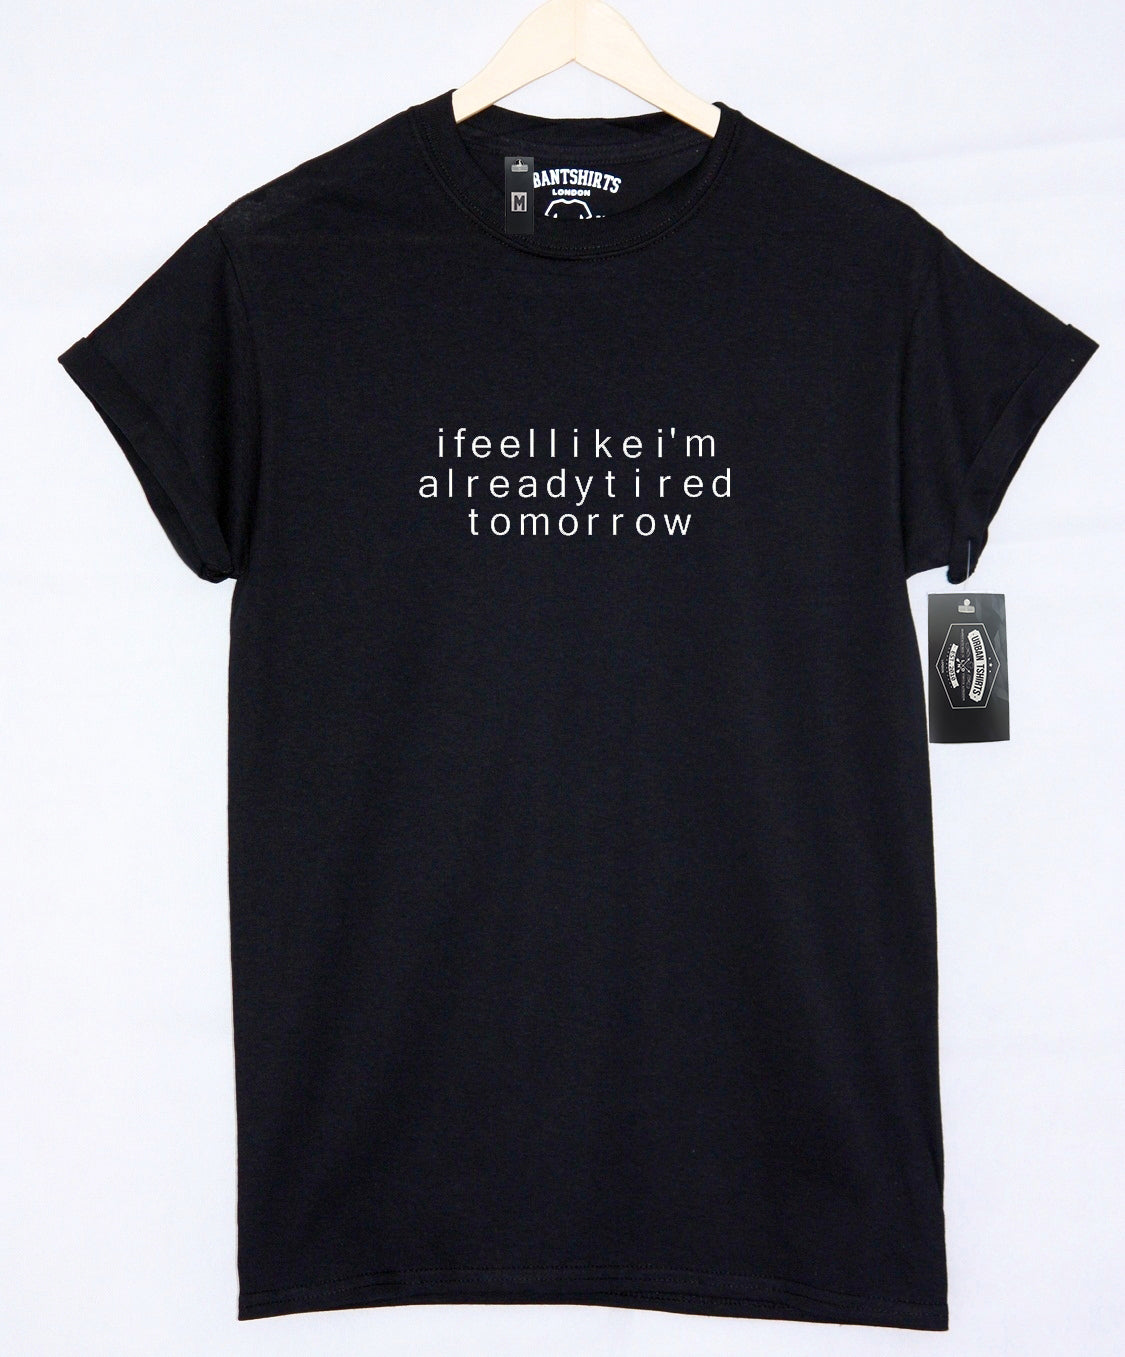 I feel like I'm already tired tommorow T-shirt - Urbantshirts.co.uk